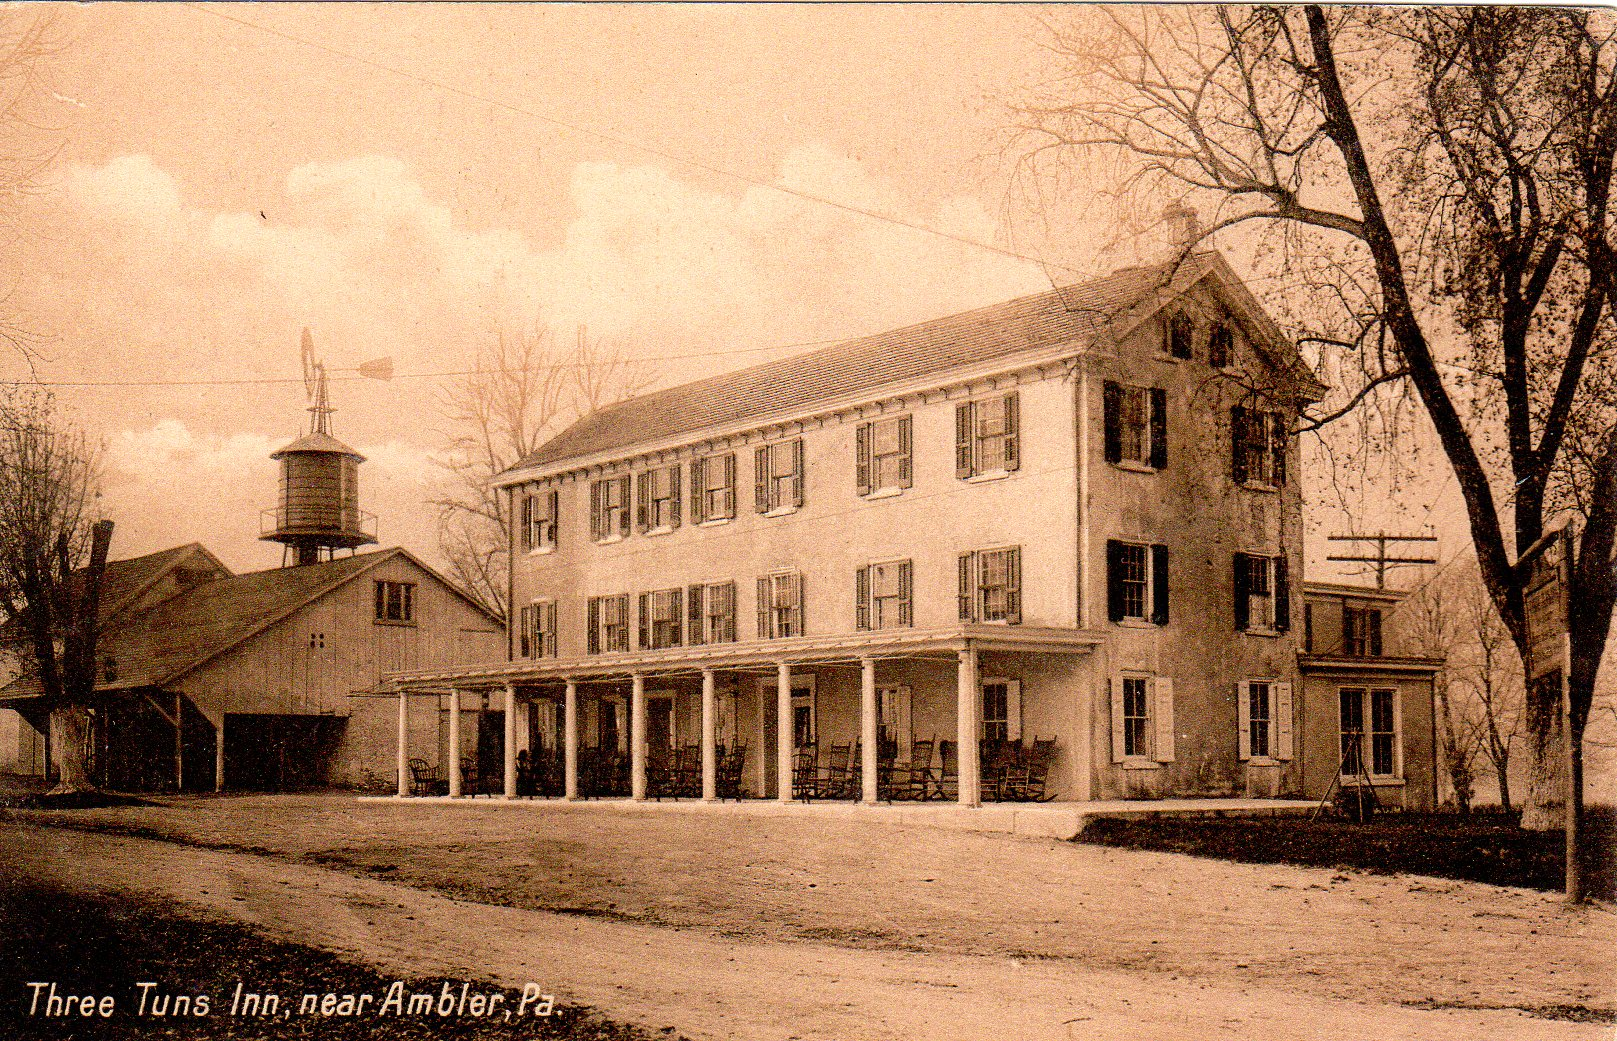 Post Card Collection (E Simon)_2682_17_Three Tuns Inn, Near Ambler